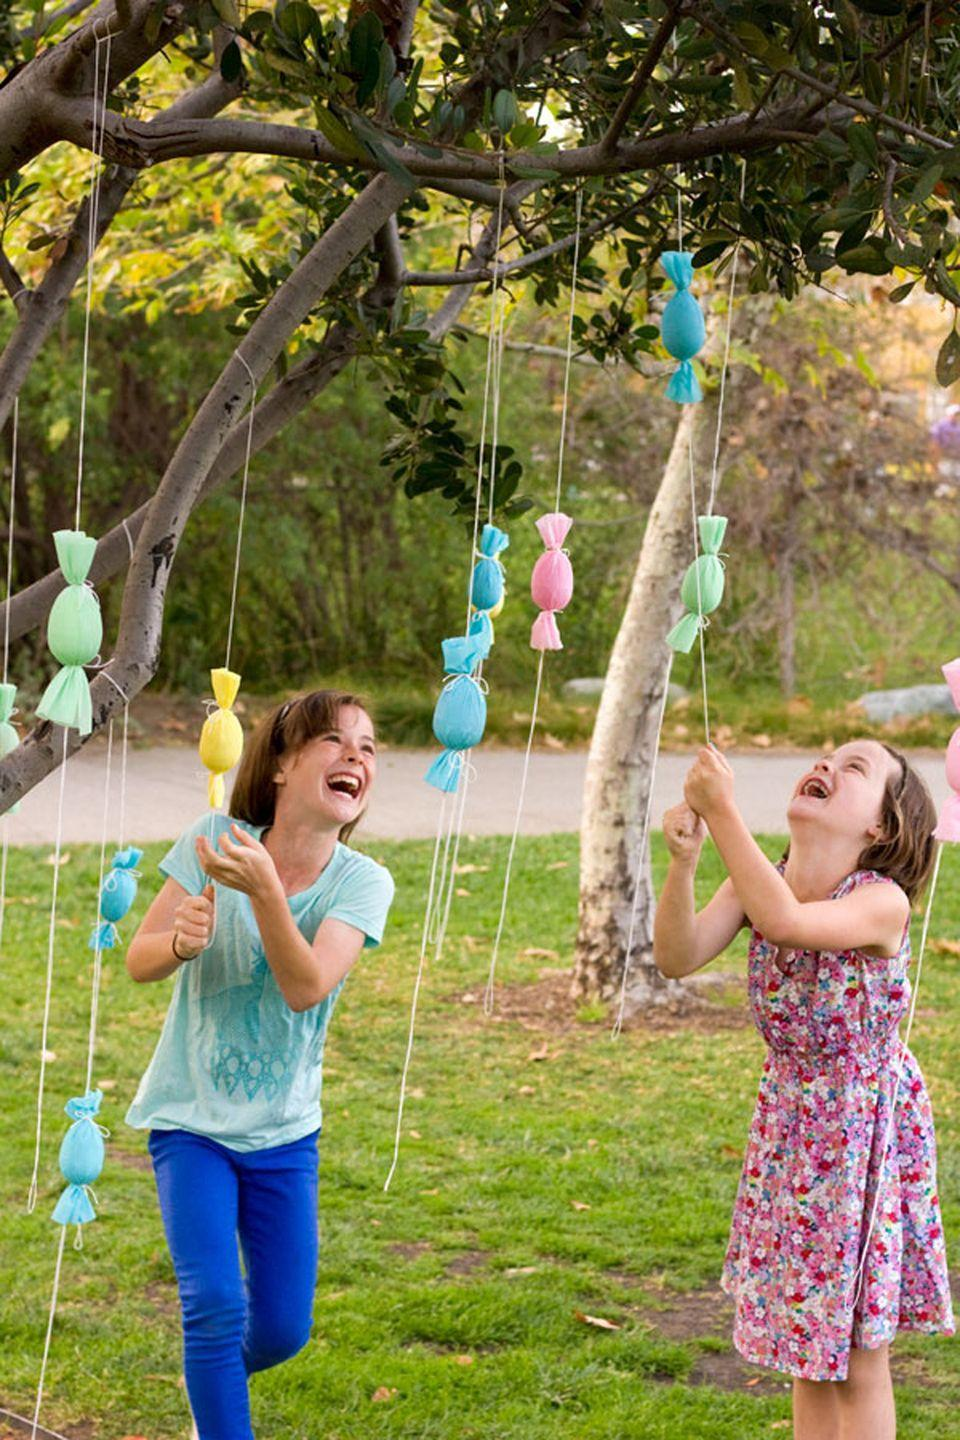 "<p>Even older kids and teenagers will love this fun activity—better get ready for a new family tradition!</p><p><strong>Get the tutorial at <a href=""http://studiodiy.com/2013/03/25/diy-egg-popper-tree/"" rel=""nofollow noopener"" target=""_blank"" data-ylk=""slk:Studio DIY"" class=""link rapid-noclick-resp"">Studio DIY</a>.</strong> </p>"